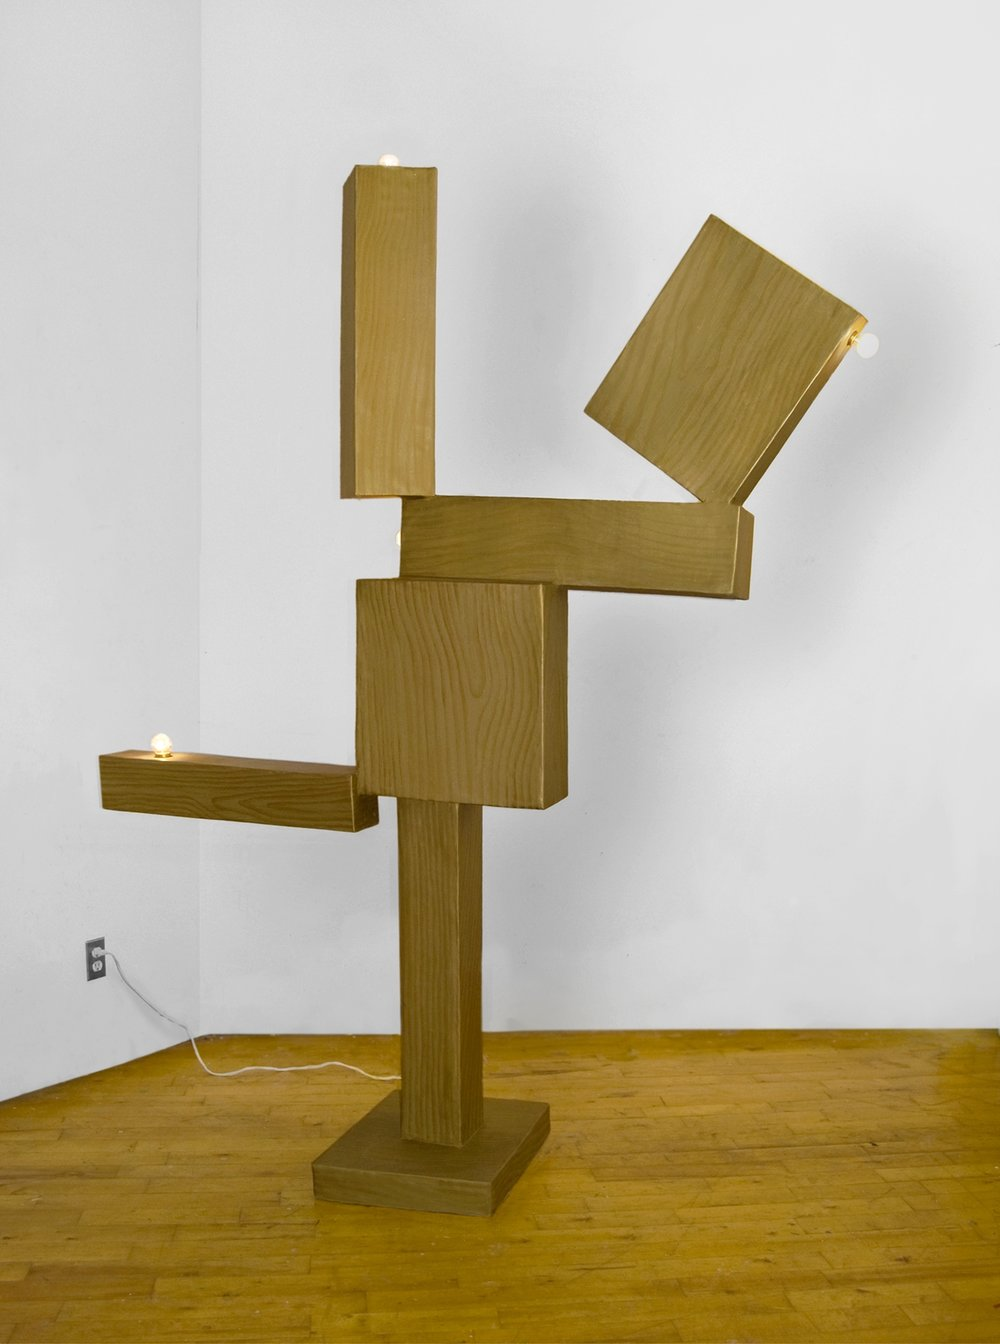 Goldrush (Cubi V) , 2013, acyrlic, papier mache, cardboard, plaster, lights, wood, 89 x 47 x 22 inches